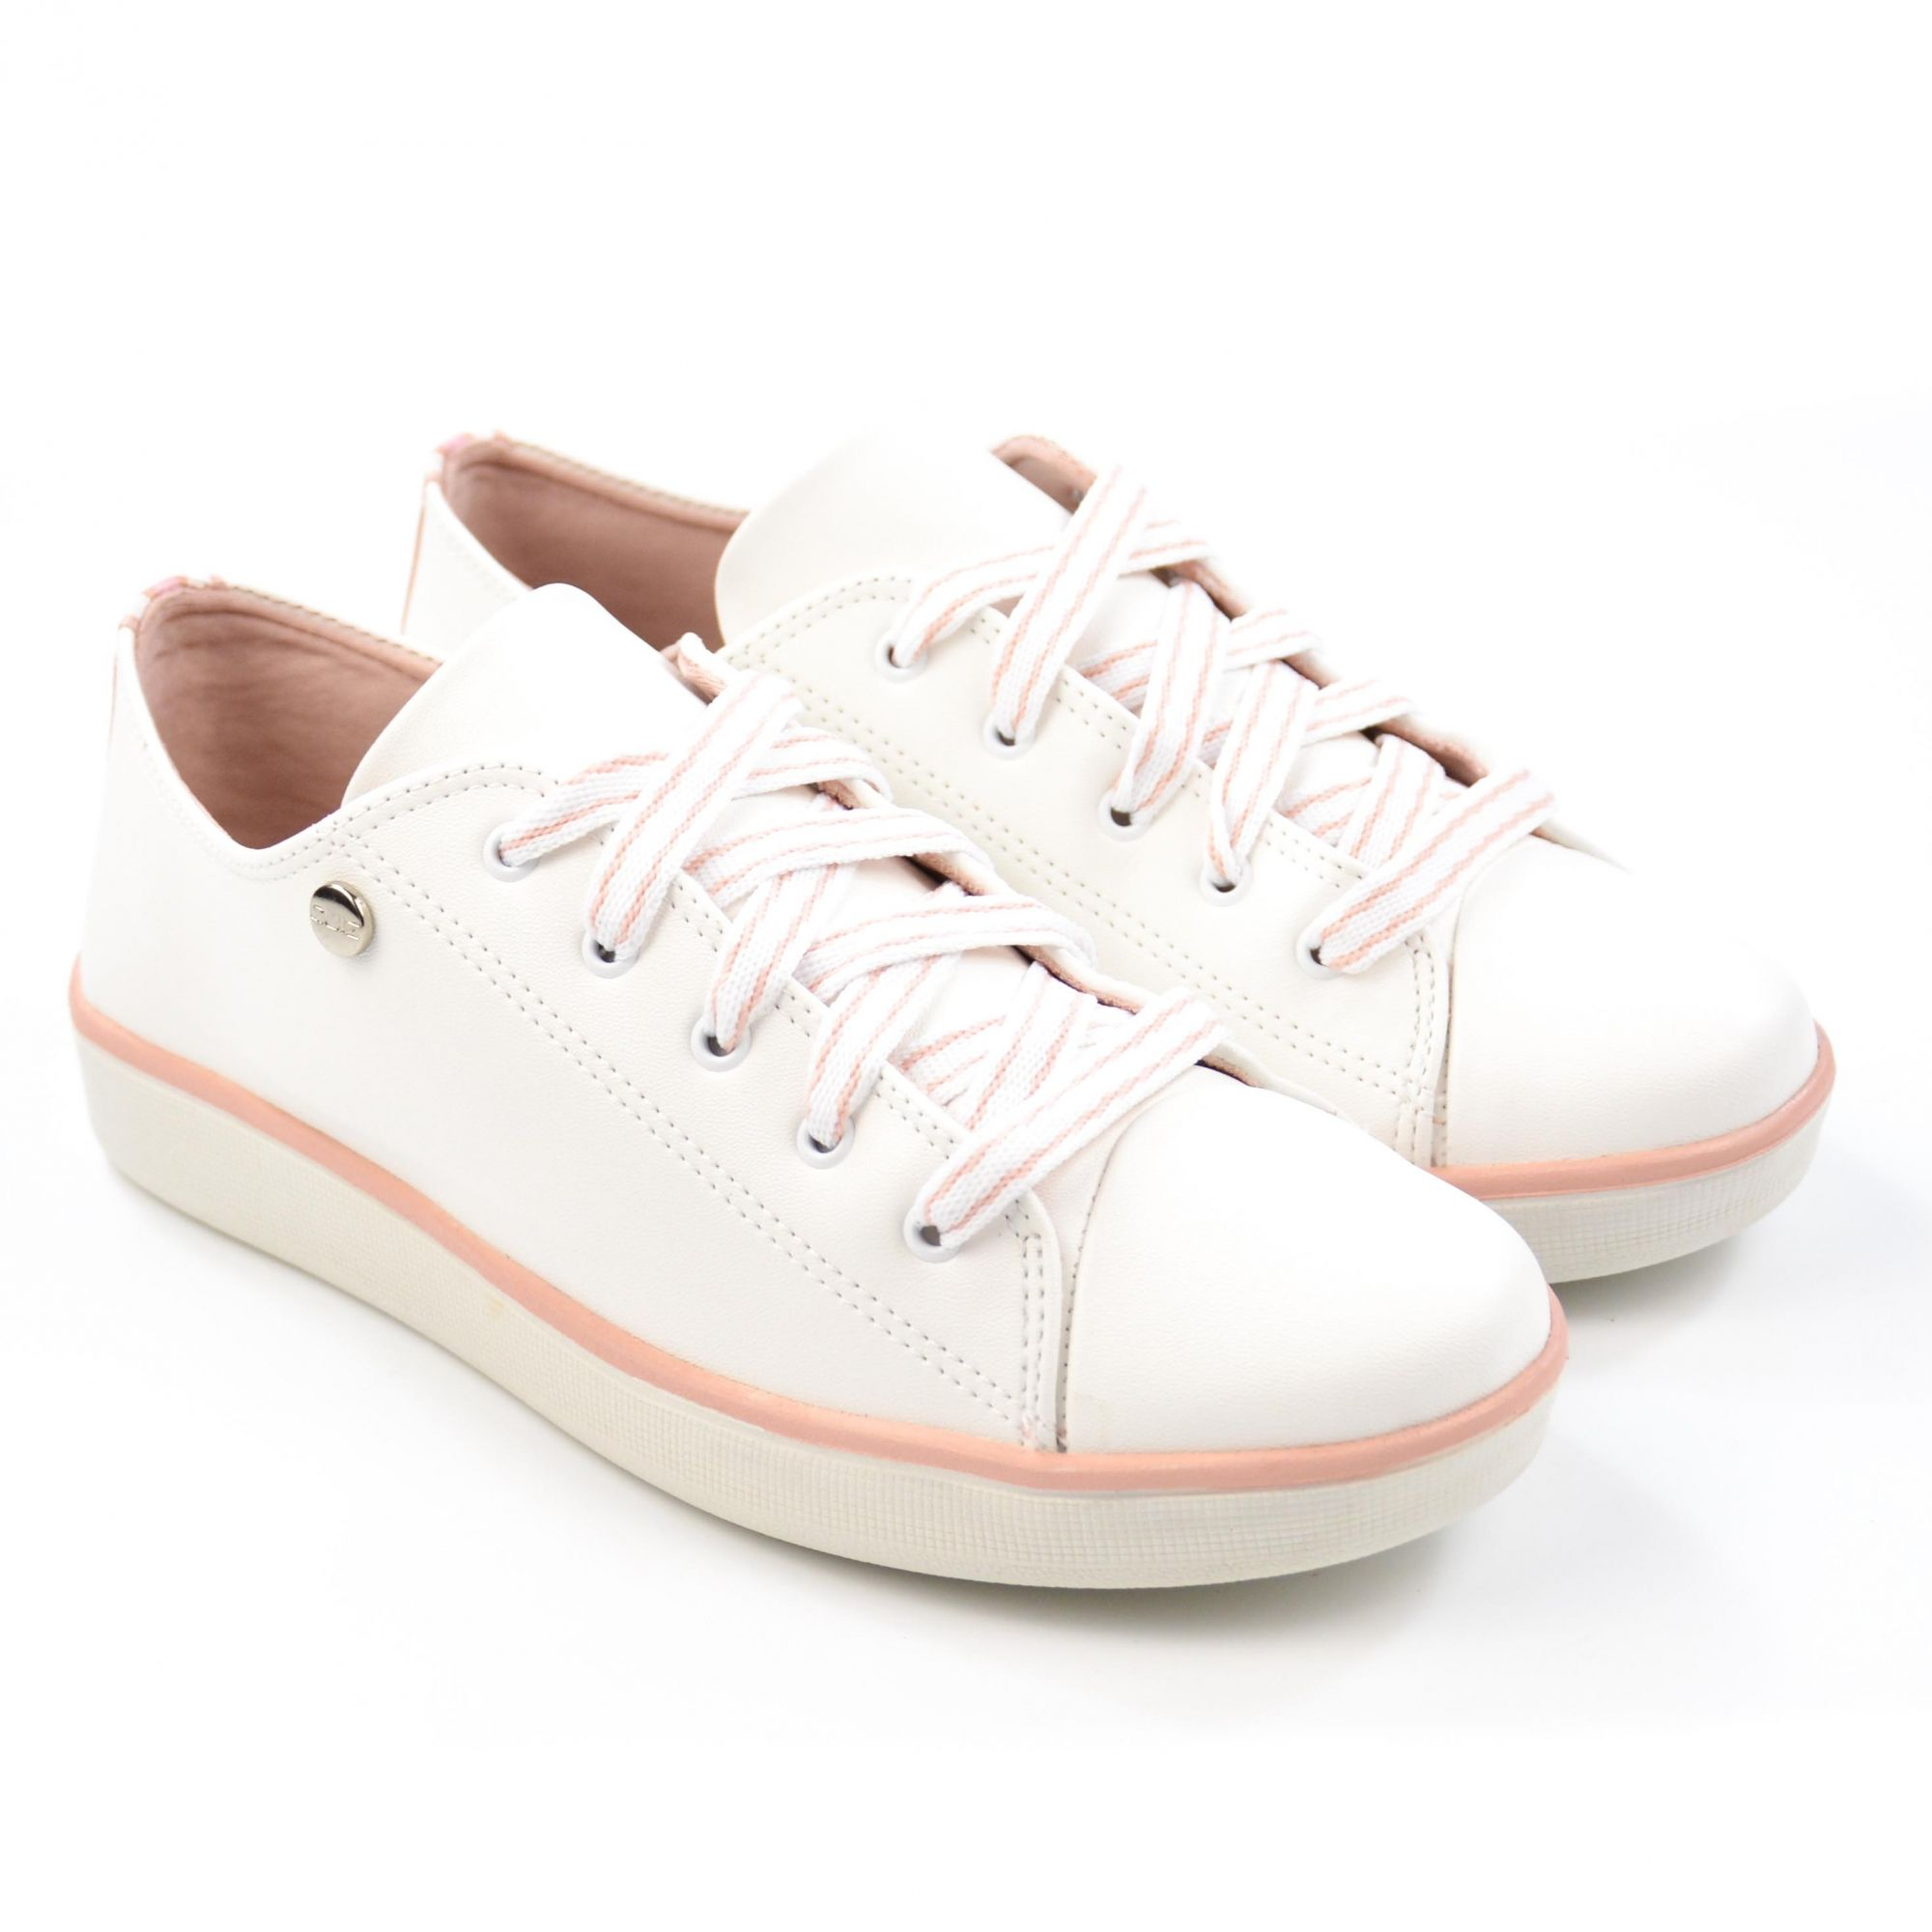 E> TENIS CASUAL FEM 68-63918 BRANCO FILETE ROSA QUIZ 18518